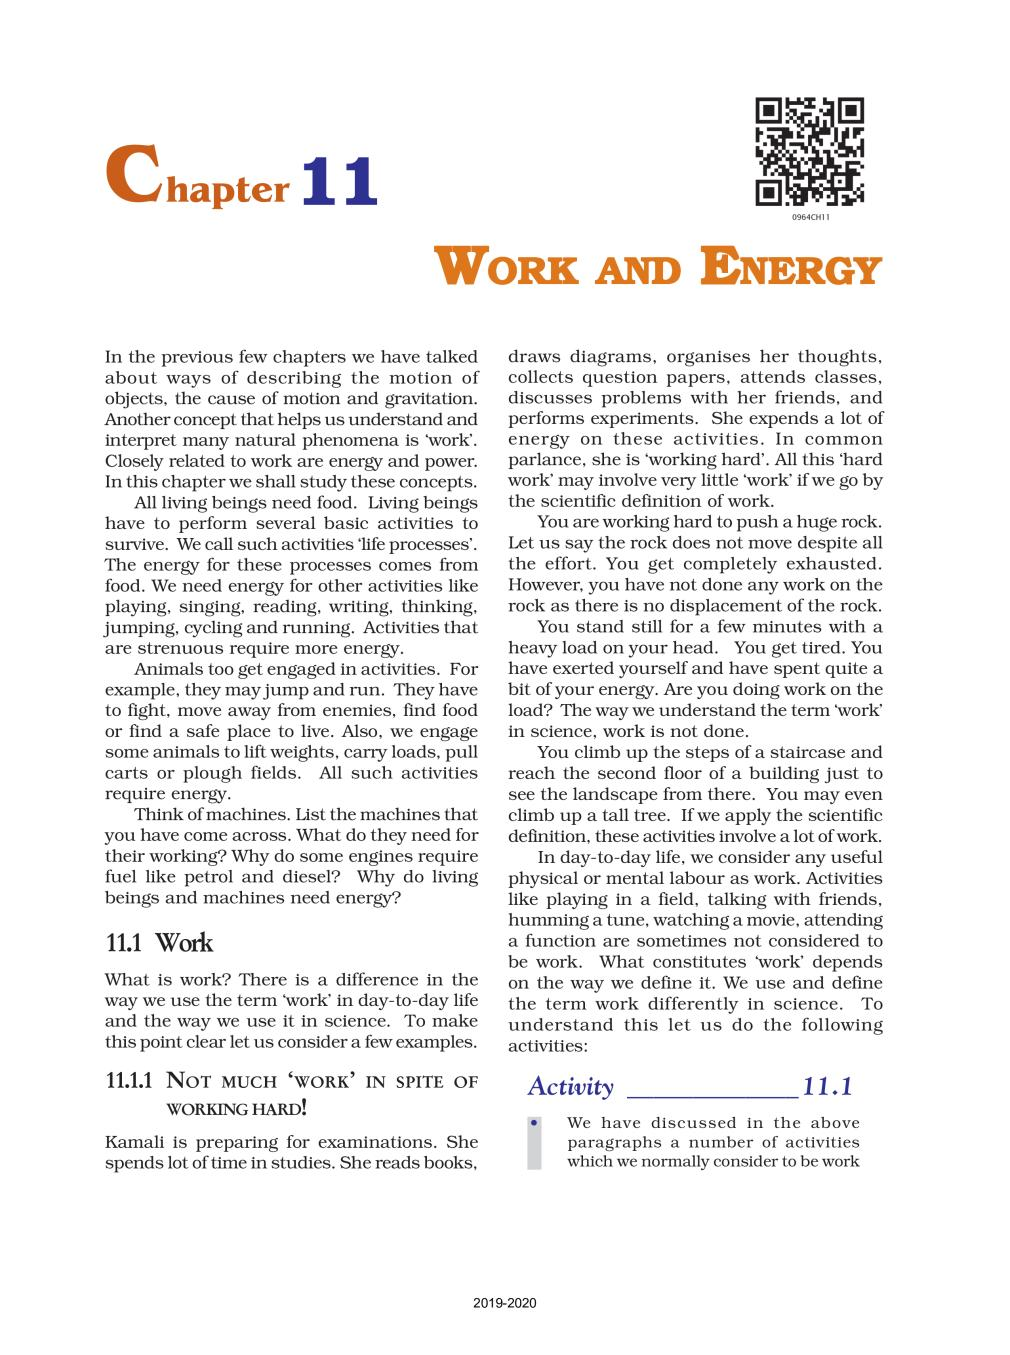 NCERT Book Class 9 Science Chapter 11 Work And Energy